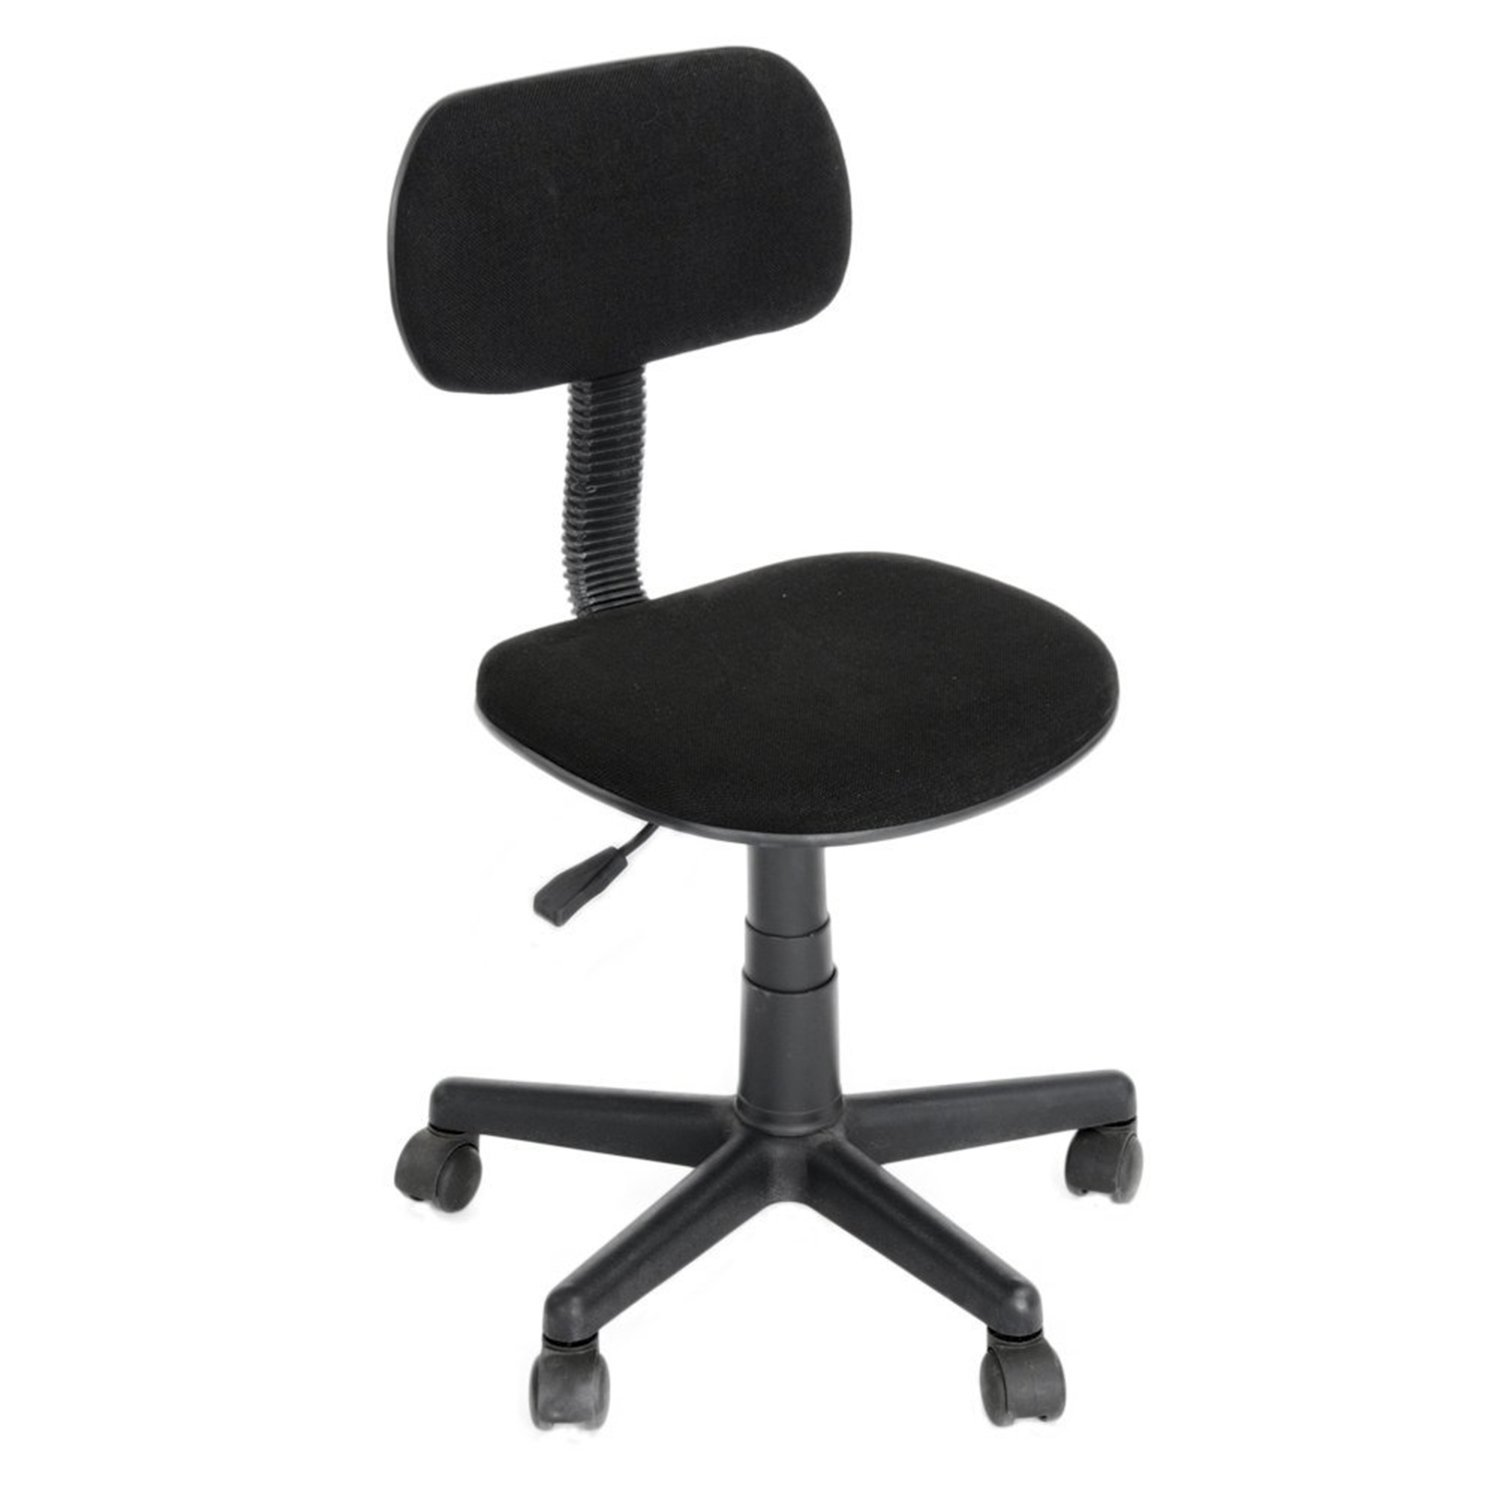 GreenForest Computer Typist Chair Seat Office Operator Rest Back Study Desk Chairs Black Amazon.co.uk Kitchen u0026 Home  sc 1 st  Amazon UK & GreenForest Computer Typist Chair Seat Office Operator Rest Back ...